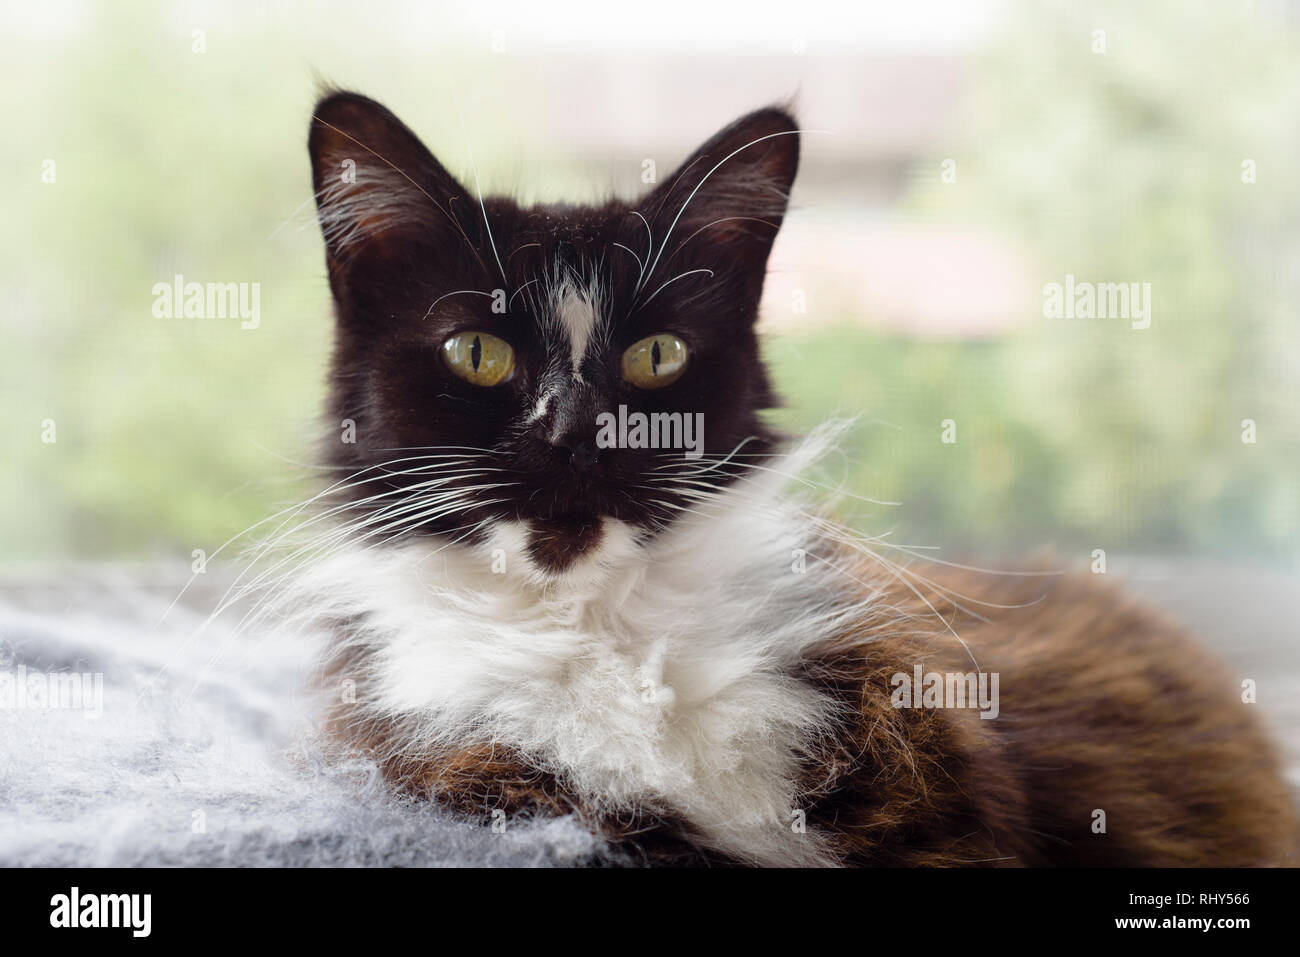 Domestic Medium Hair Stock Photos Domestic Medium Hair Stock